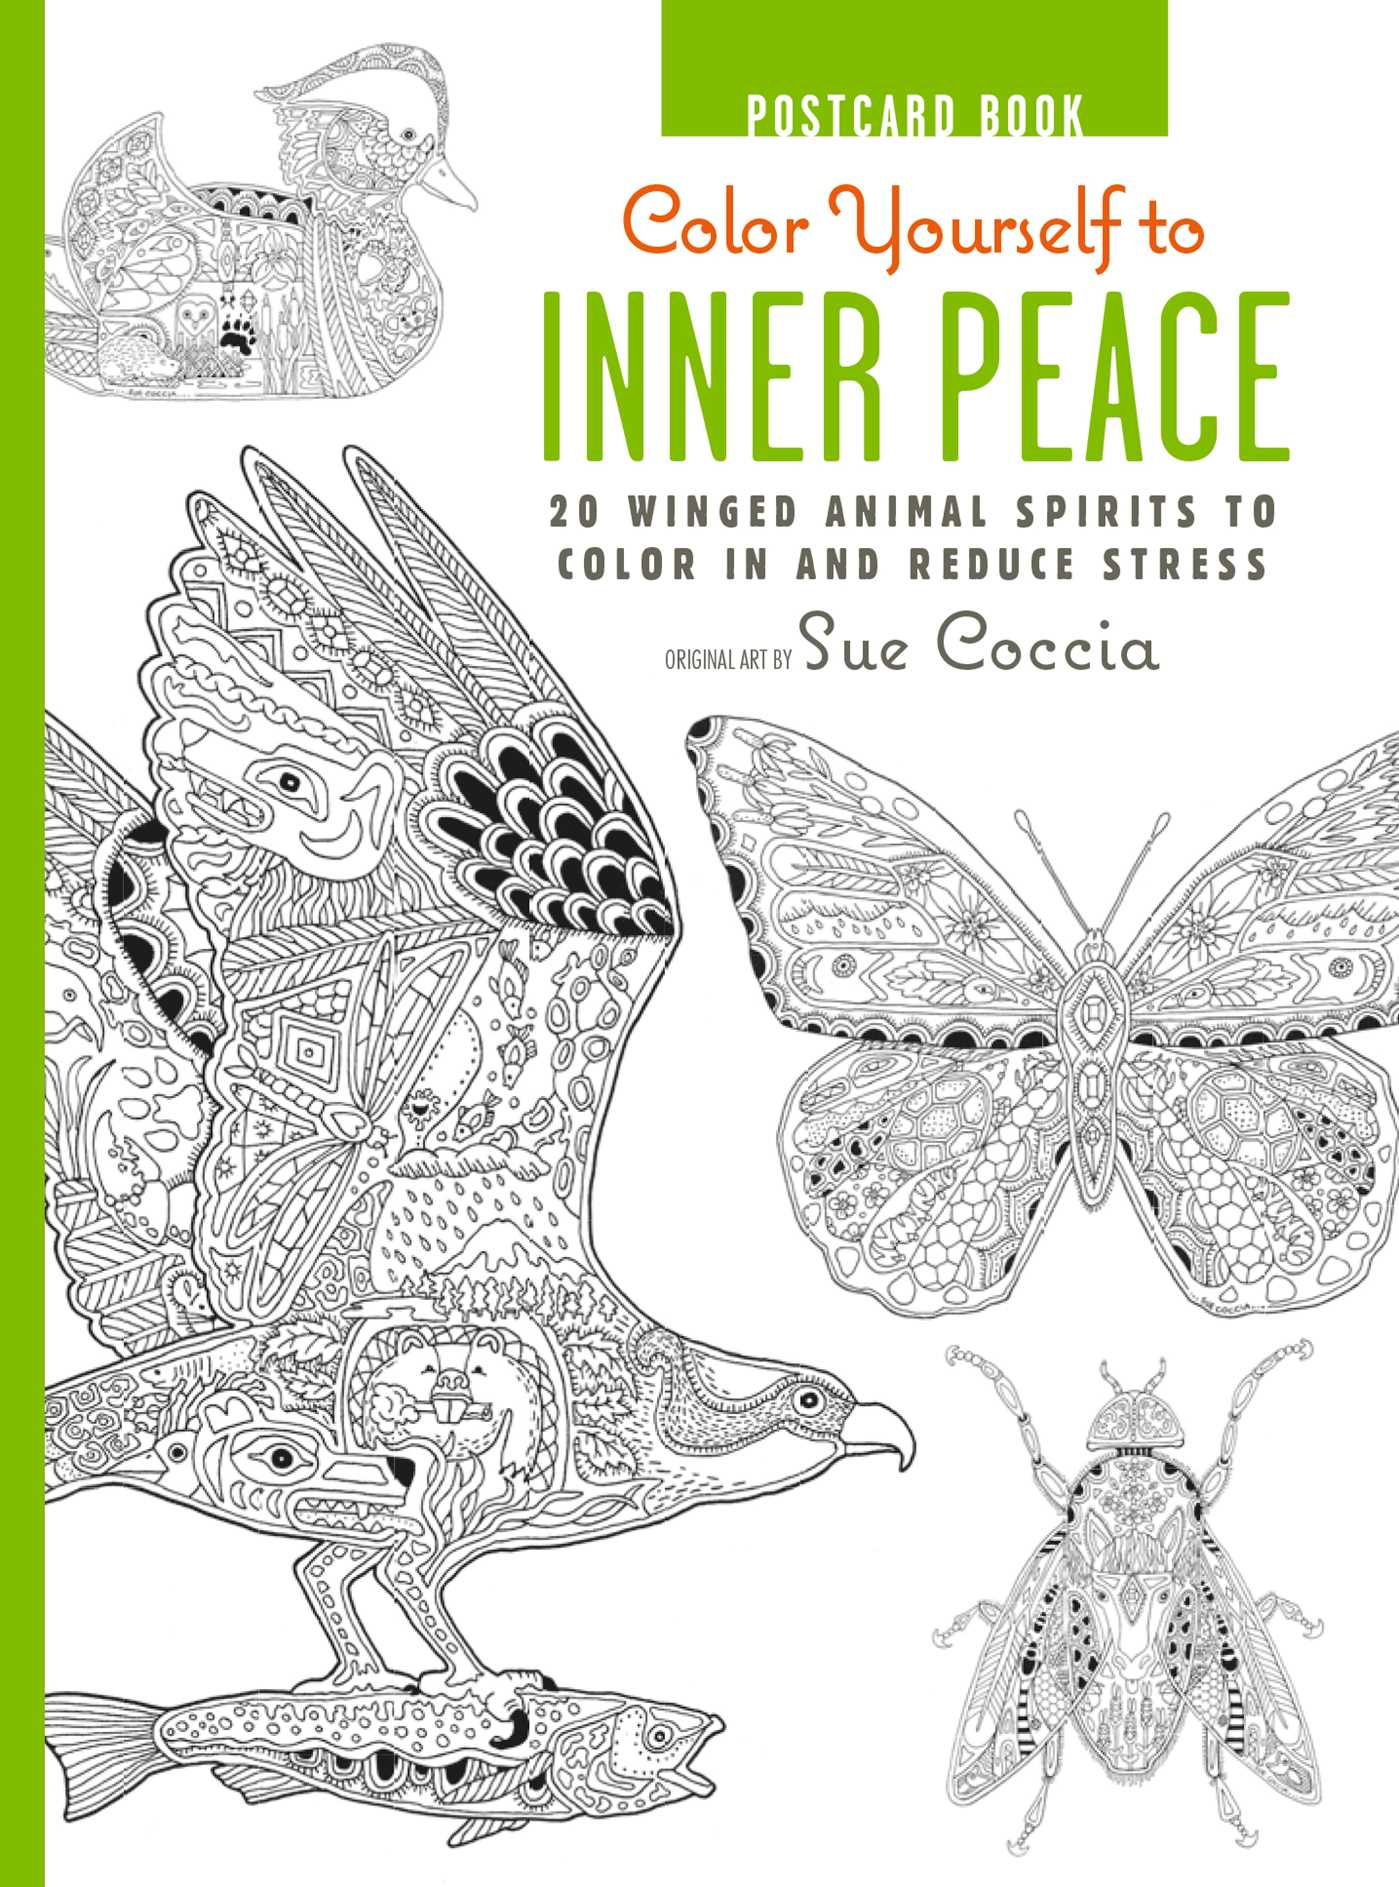 color yourself to inner peace postcard book book by sue coccia